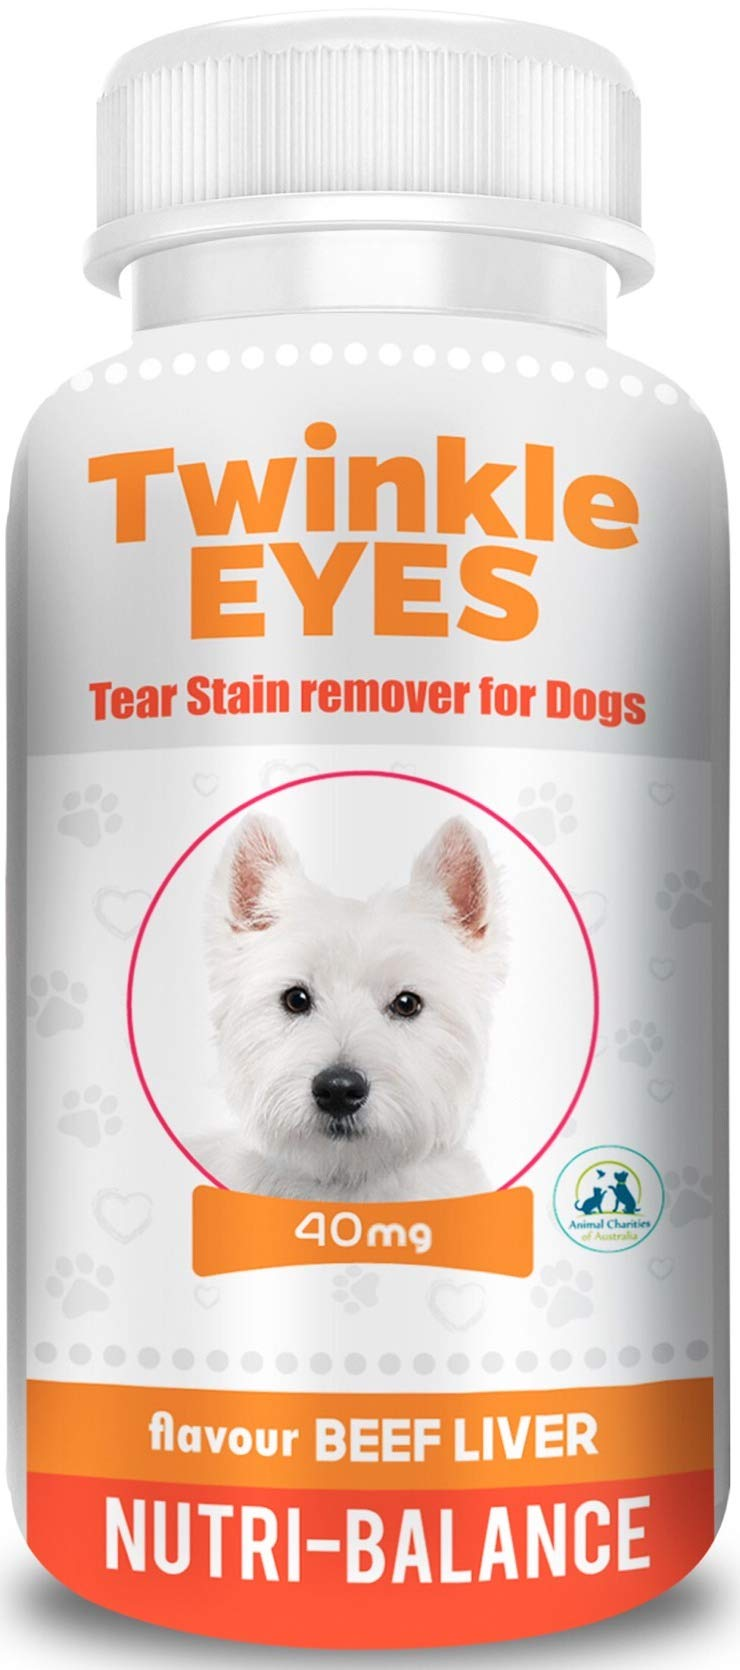 Twinkle Eyes Tear Stain Remover for Dogs - Beef Liver 40g by TWINKLE EYES